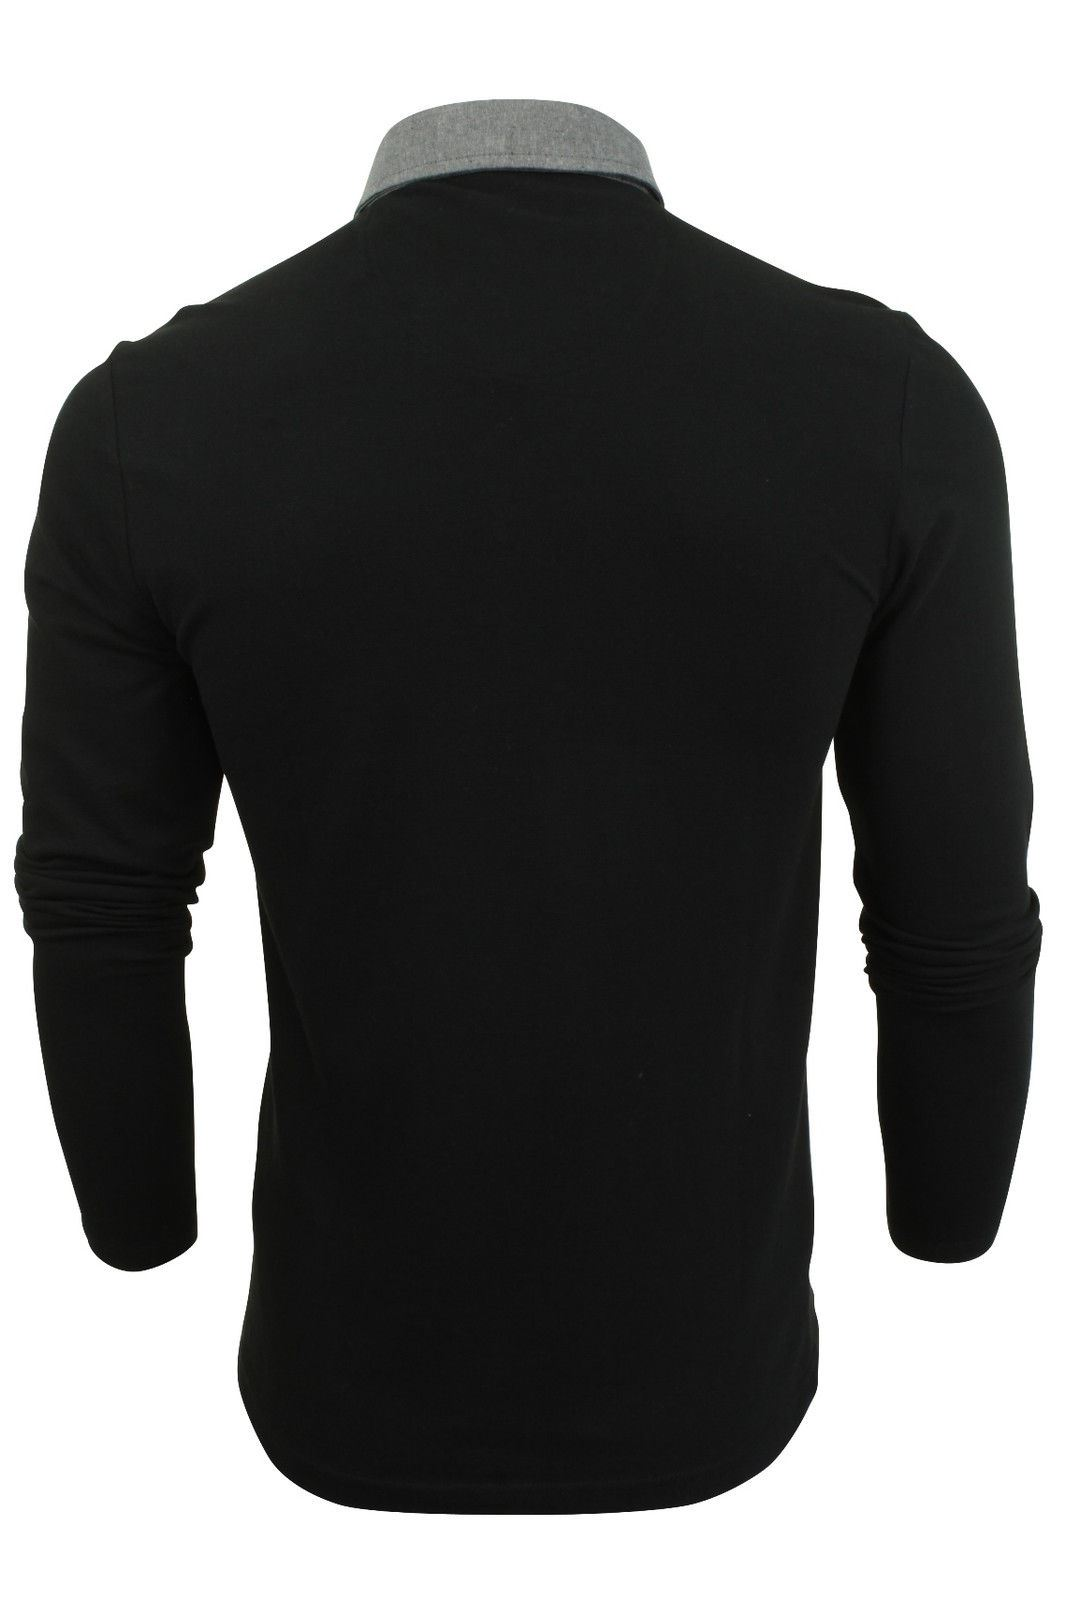 New-Mens-Button-Up-Long-Sleeve-Pique-Collared-Casual-Formal-Polo-Jumper-Shirt thumbnail 3